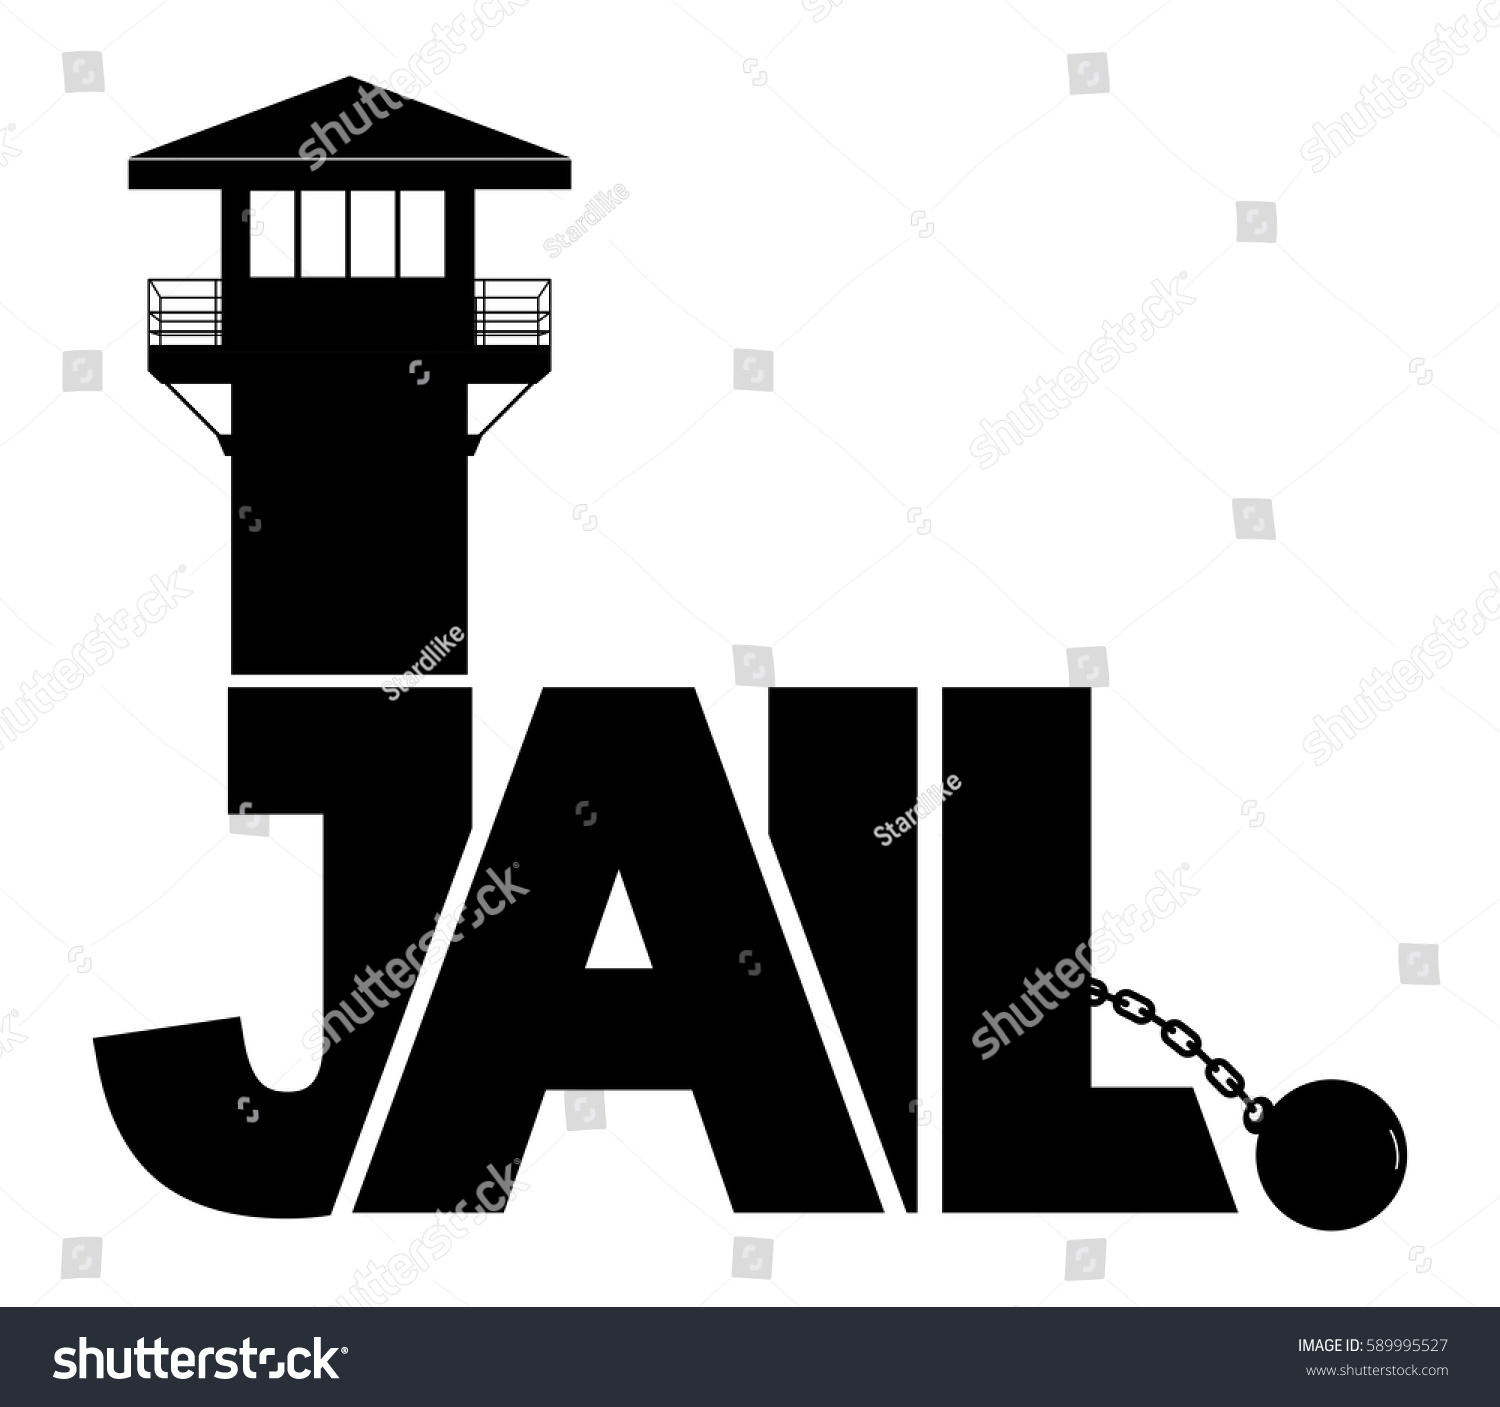 Icon Jail Vector Prison Black Tower Stock Vector (Royalty Free ...